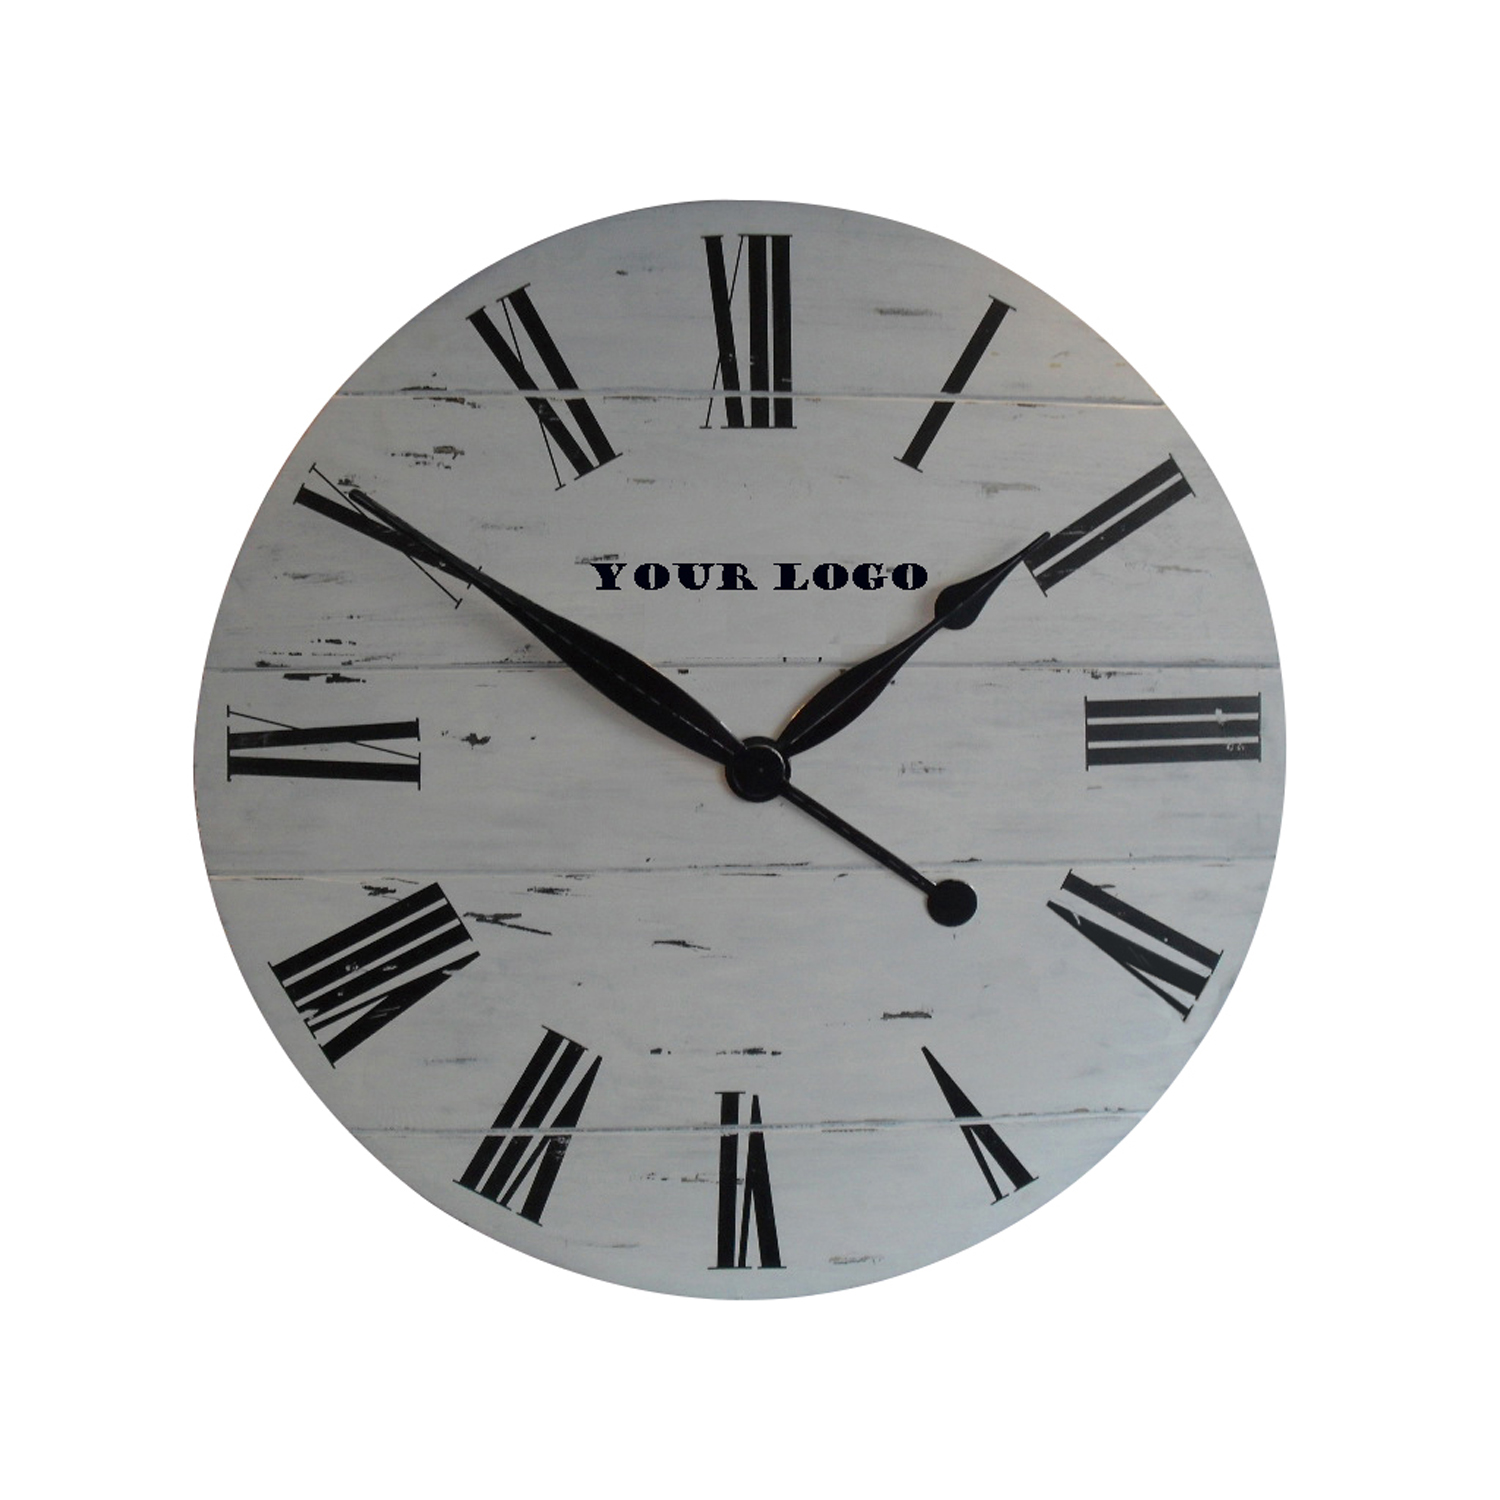 OEM brand 36 inches solid wood wall clock